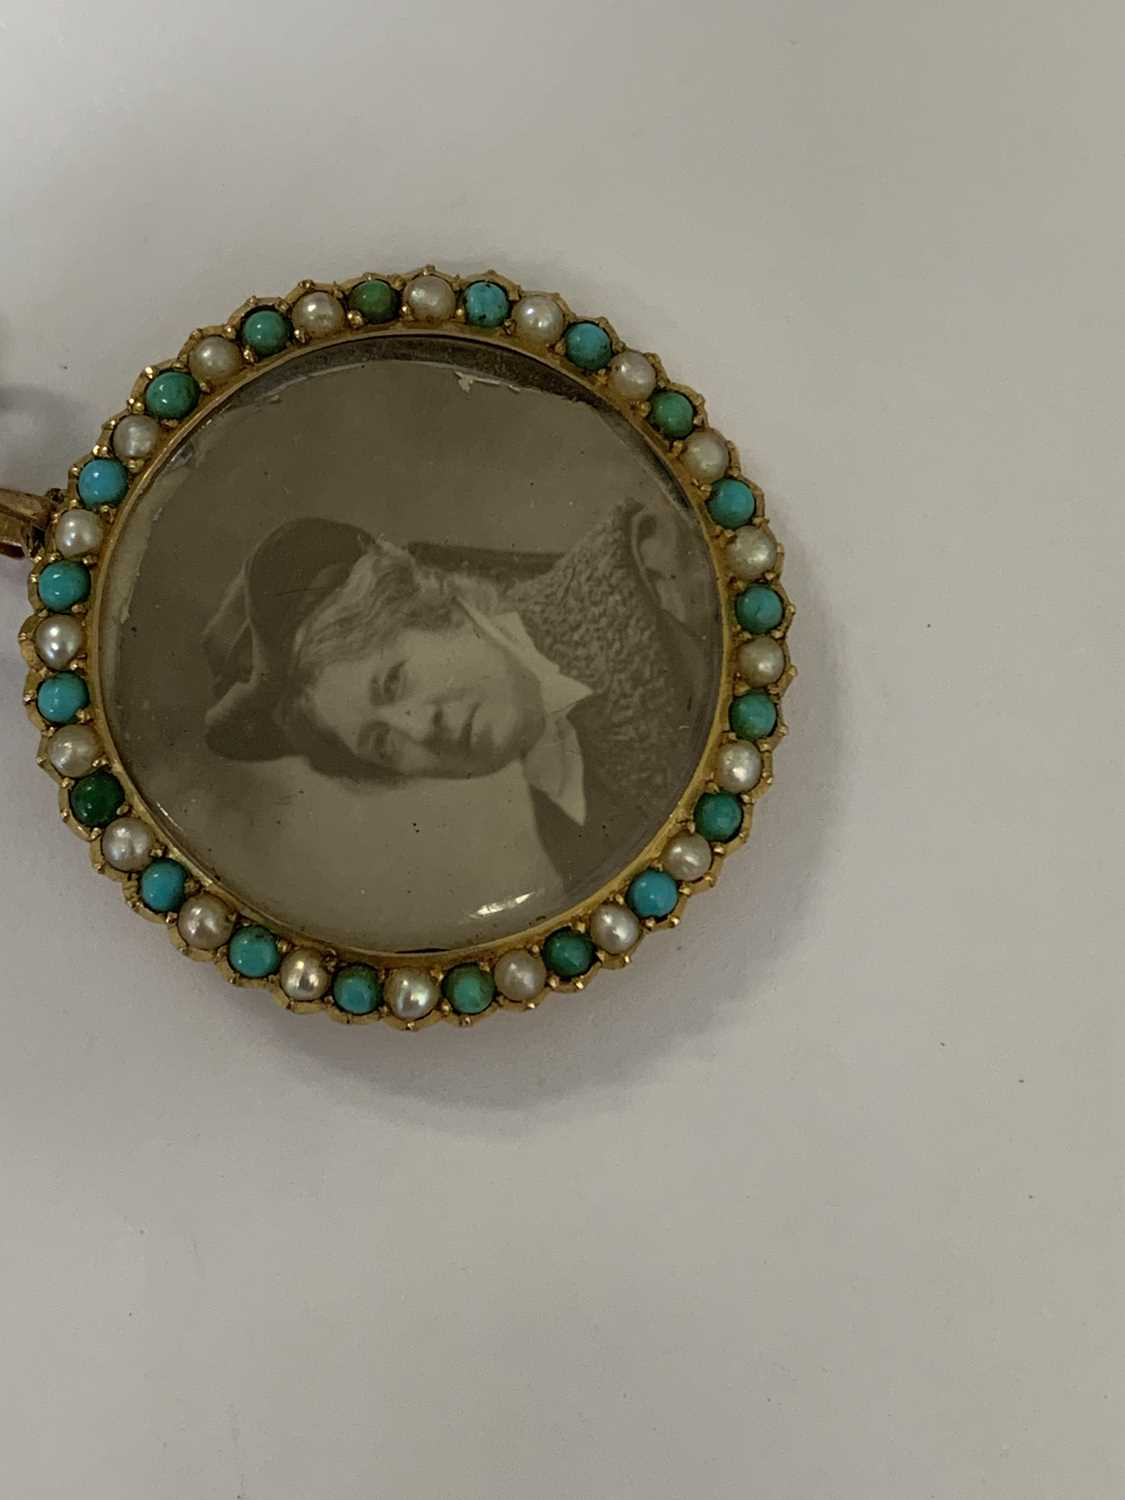 A turquoise and split pearl circular locket pendant - Image 9 of 9